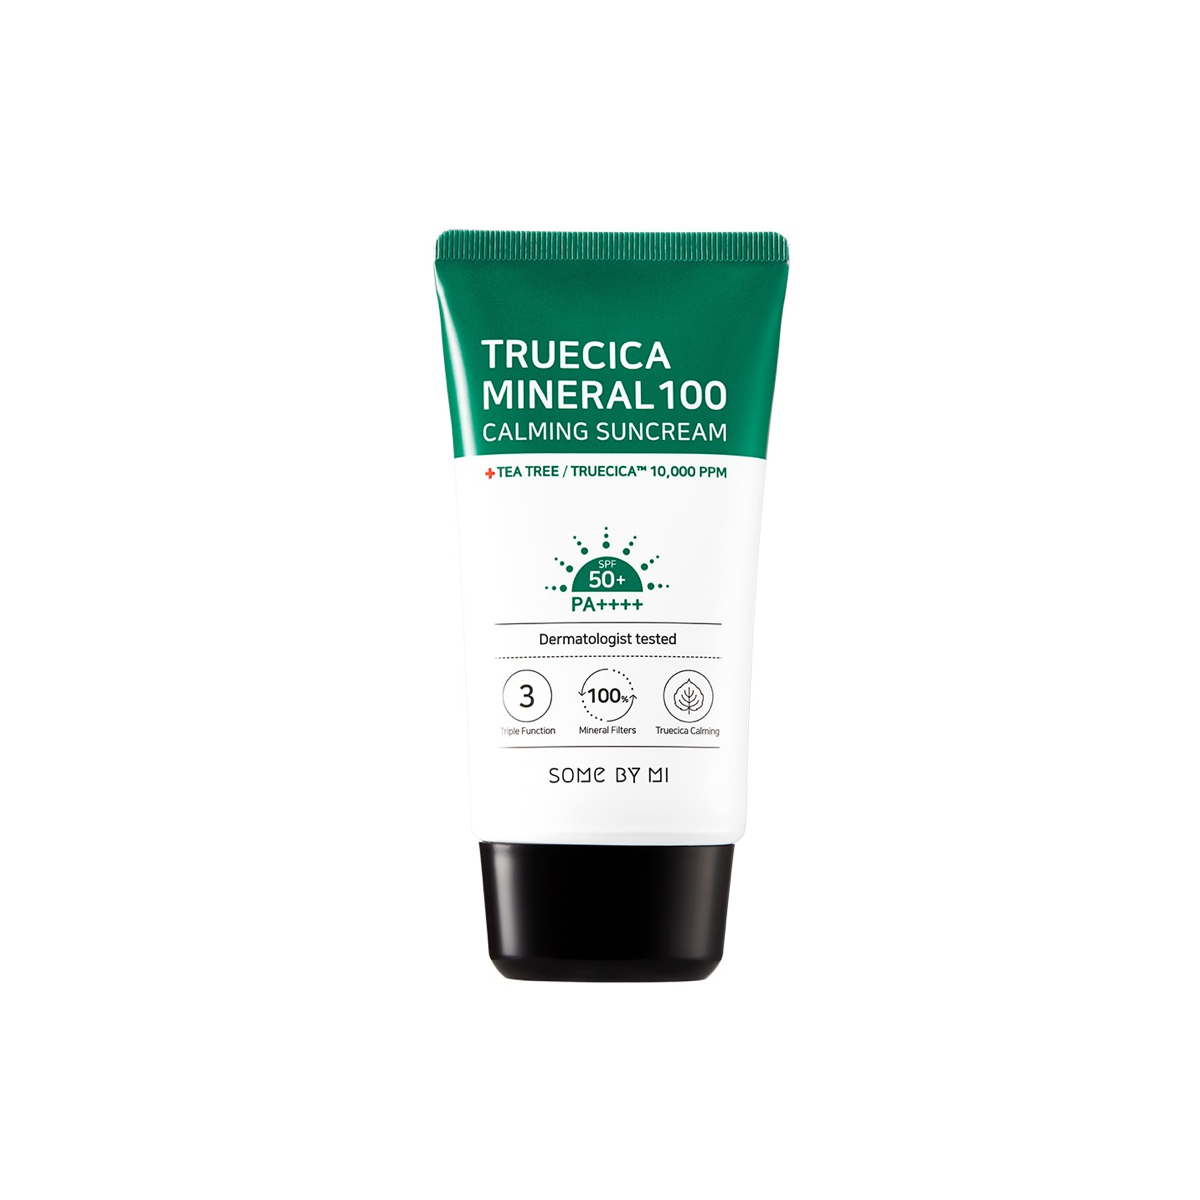 SOMEBYMI Truecica Minera 100 Calming Suncream spf 50 PA++++ 50ml - misumicosmeticsuk